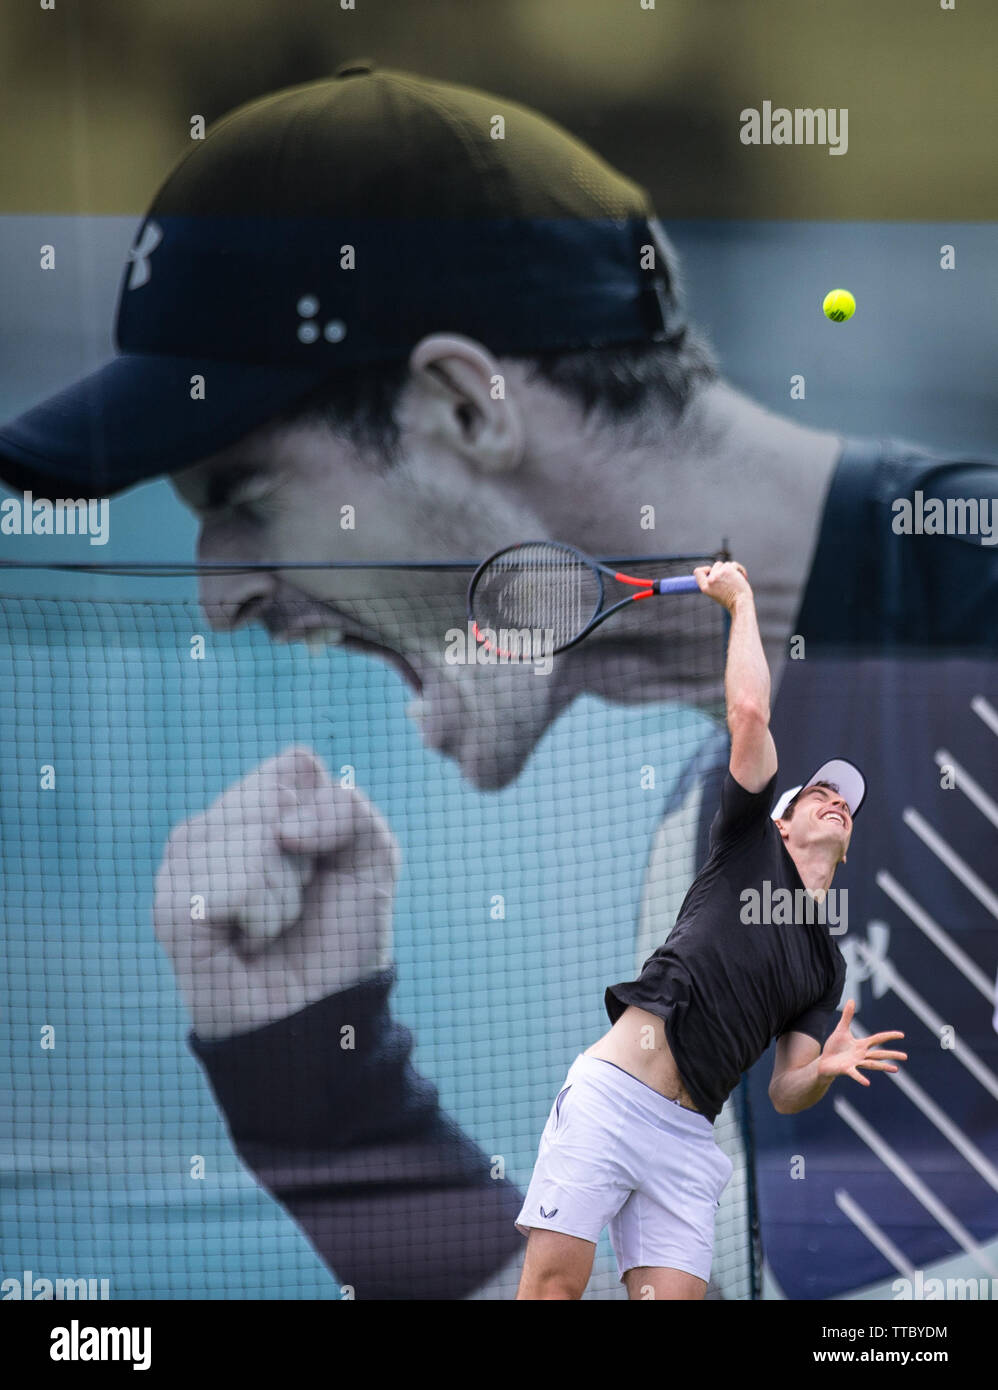 Londres, Reino Unido. 16 de junio de 2019. ANDY MURRAY de GBR durante las rondas de clasificación y la práctica del tenis en la Fever-Tree Campeonatos en el Queen's Club, Londres, Inglaterra, el 16 de junio de 2019. Foto por Andy Rowland. Crédito: Primer Media Images/Alamy Live News Imagen De Stock